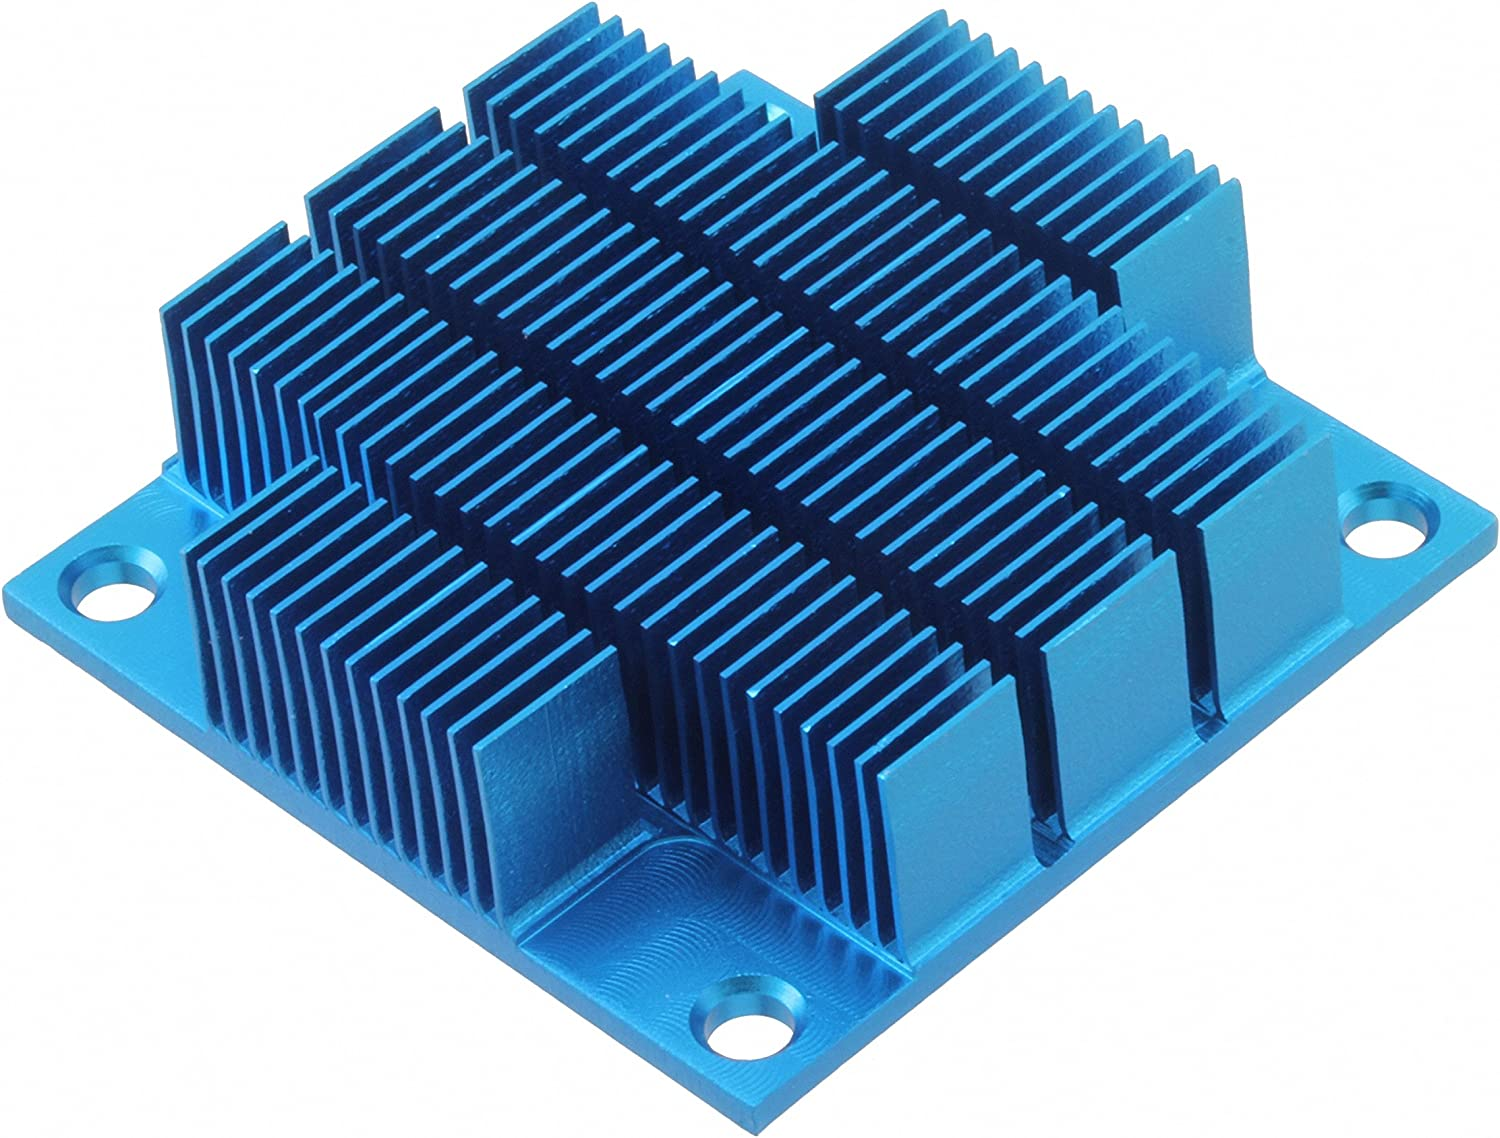 ATS-P1-106-C2-R1 HEATSINK 45X40X12.7MM XCUT T766 Pack of 5